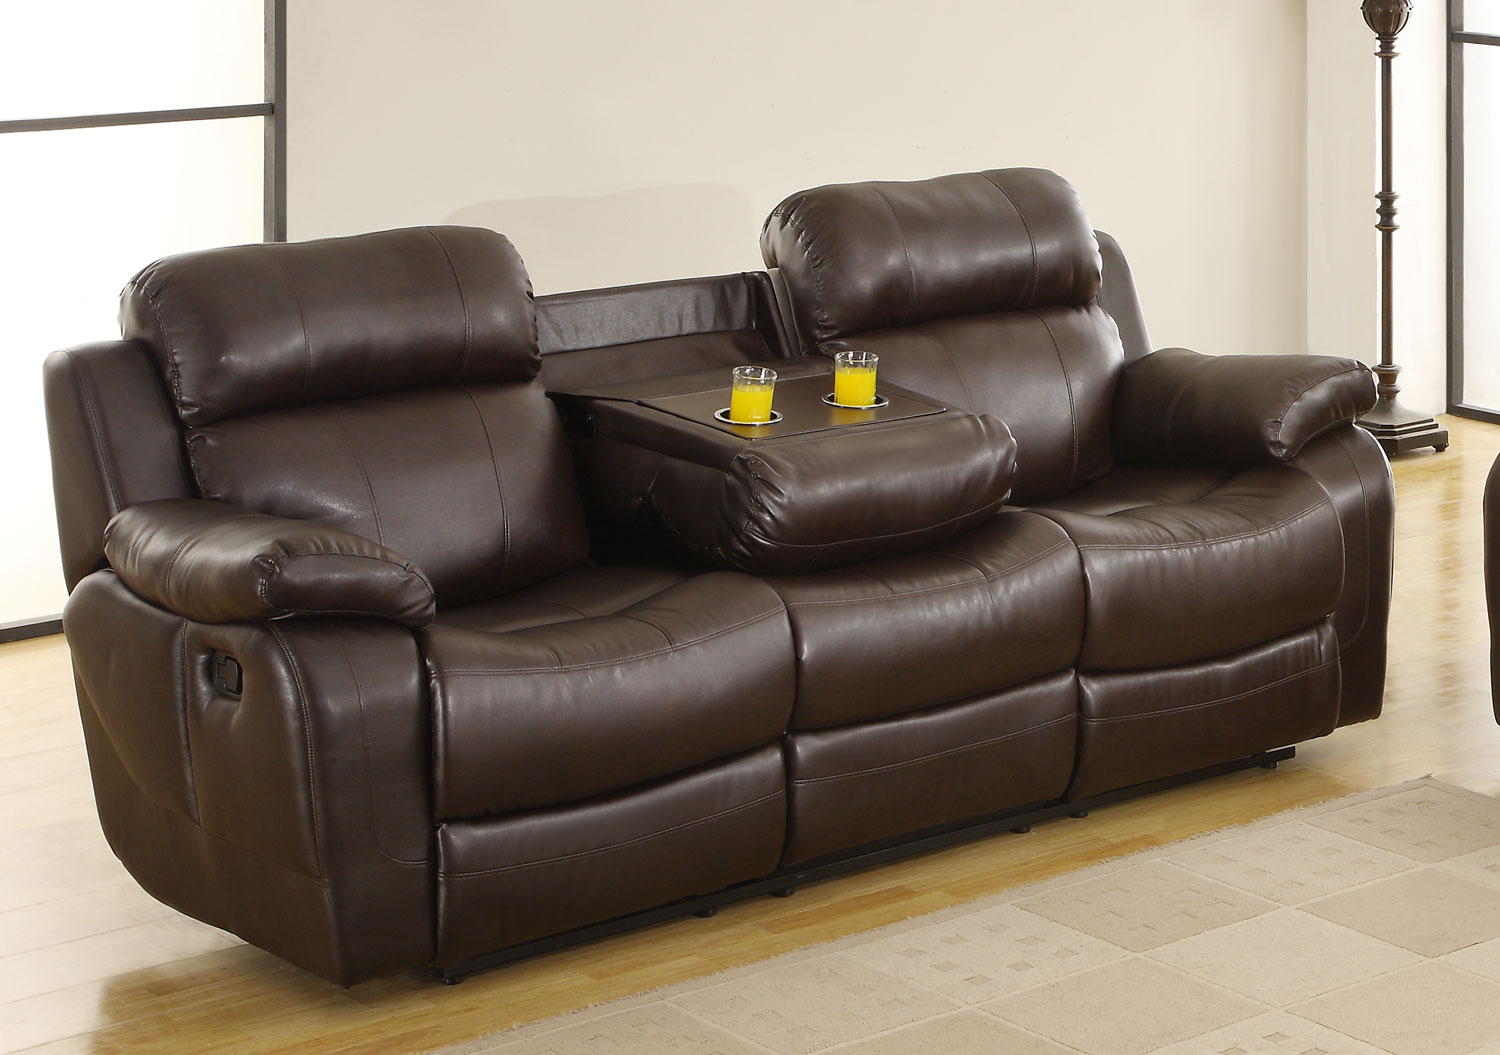 drop sofa leather with holder gel reclining power magazine down cup reading black madoc he double lights recliner p match receptacles homelegance and holders bag